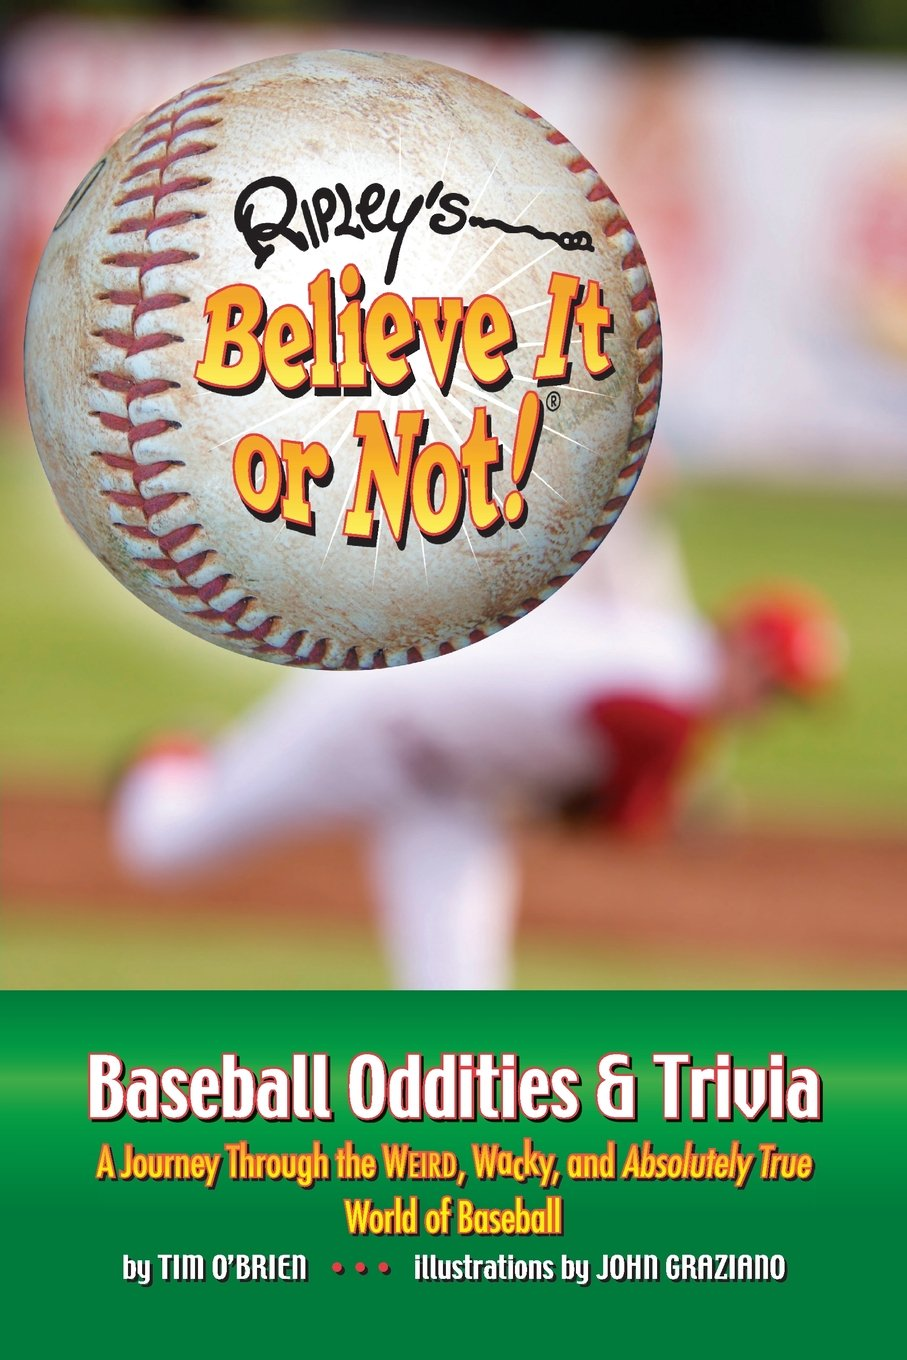 Ripley's Believe It Or Not! Baseball Oddities & Trivia: Tim O'brien, John  Graziano: 9781893951297: Amazon: Books